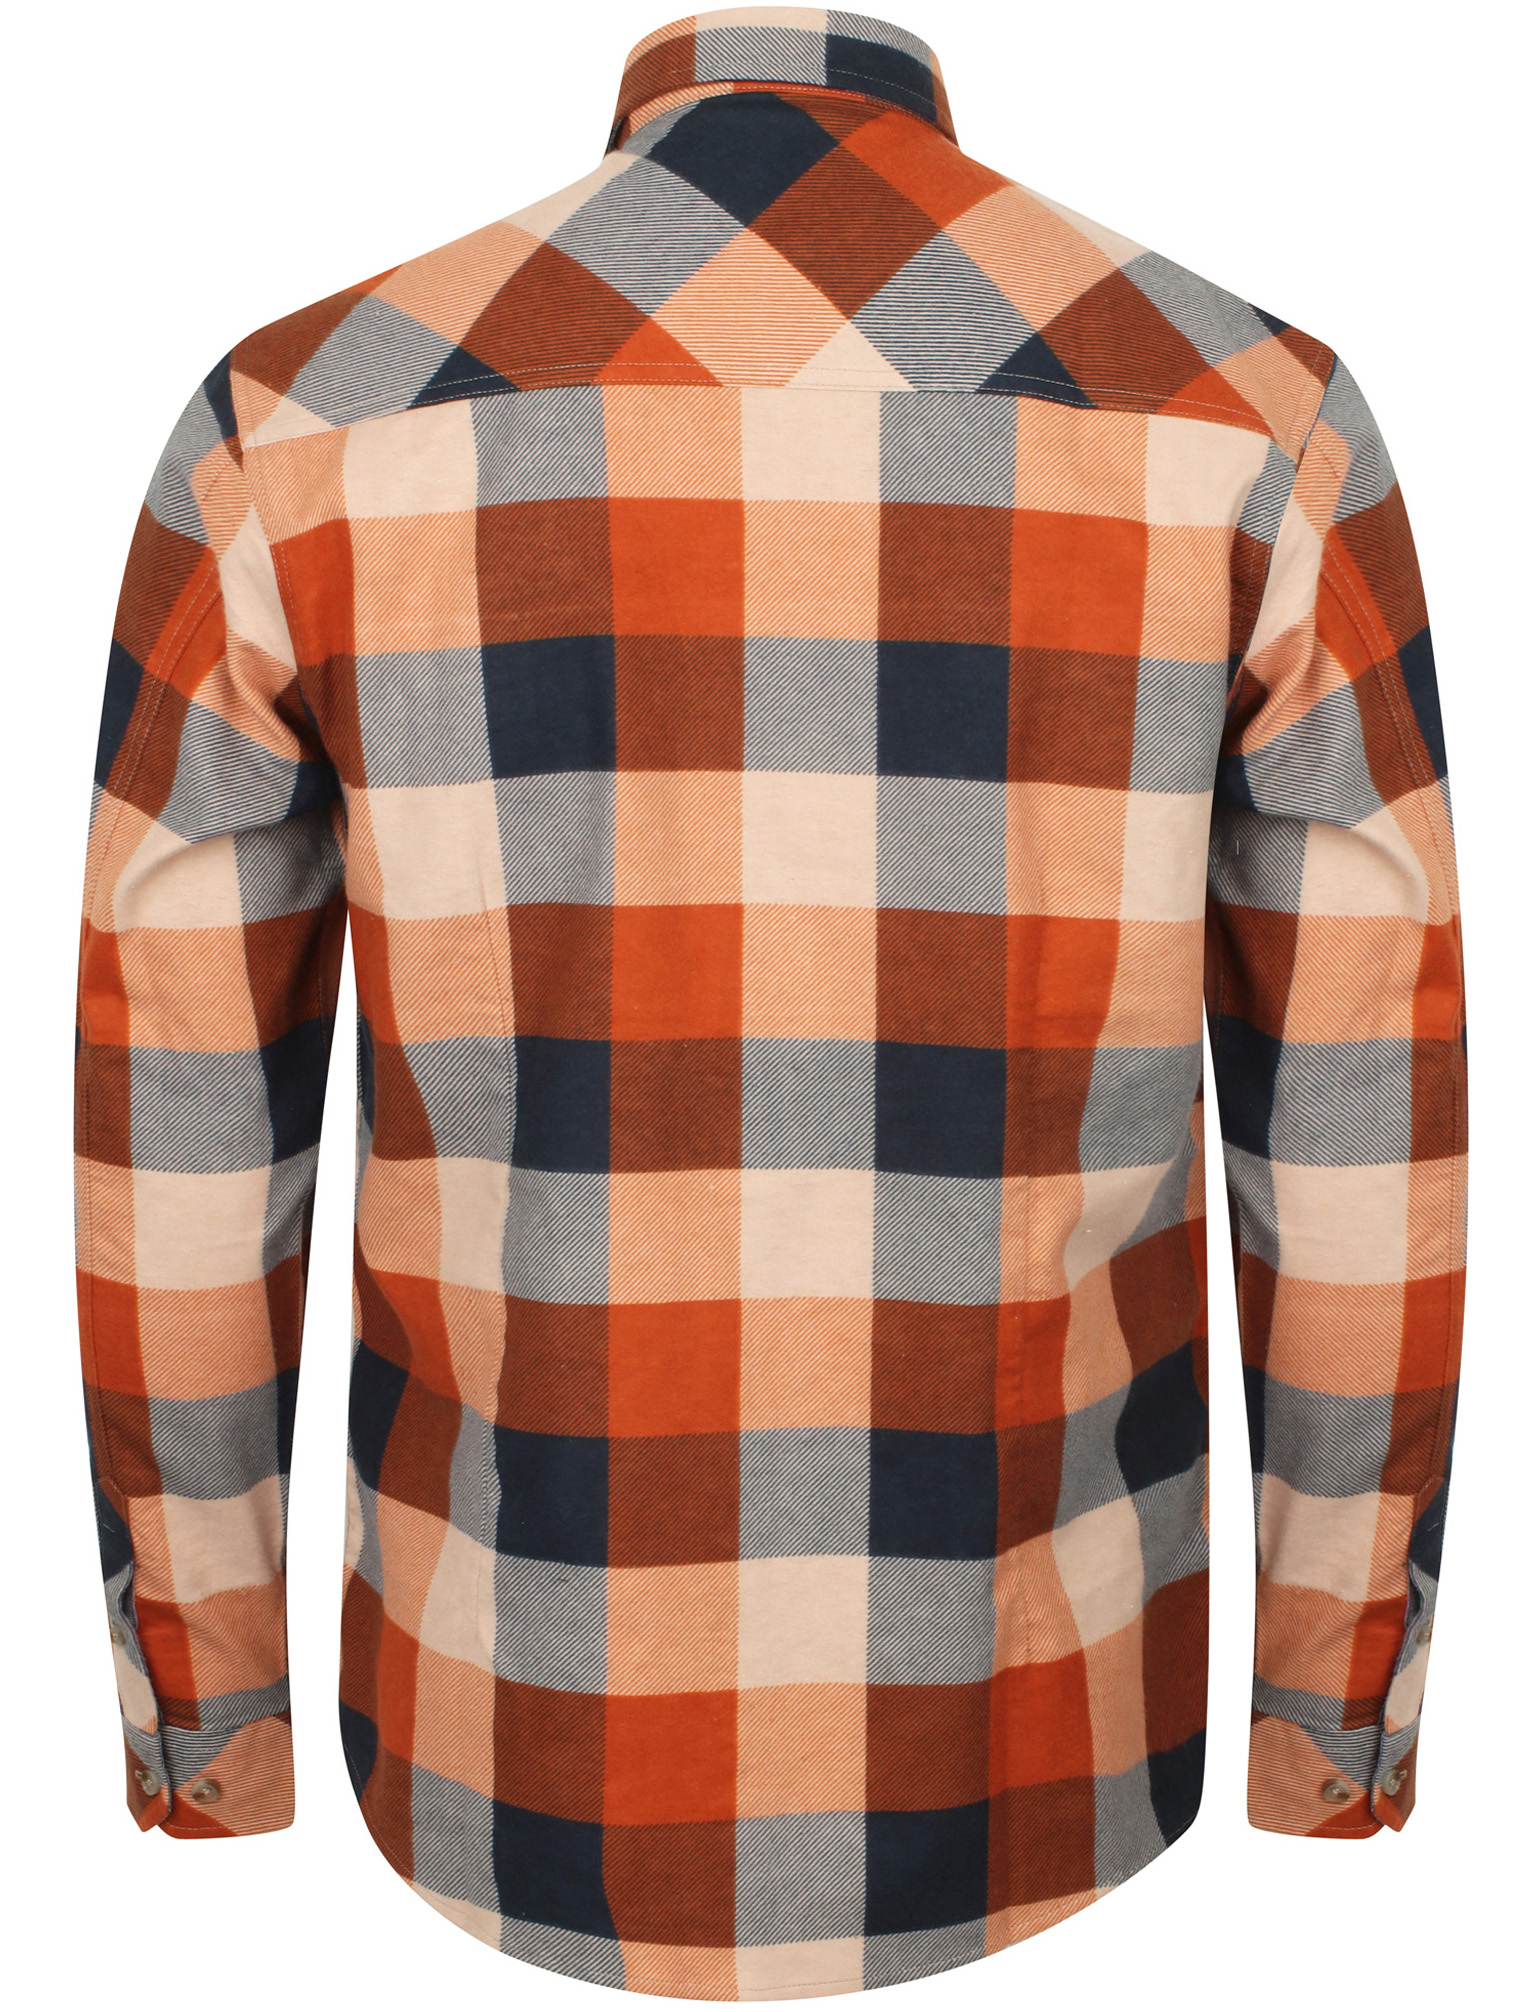 New-Mens-Tokyo-Laundry-Cotton-Long-Sleeve-Checked-Flannel-Shirt-Size-S-XL thumbnail 38